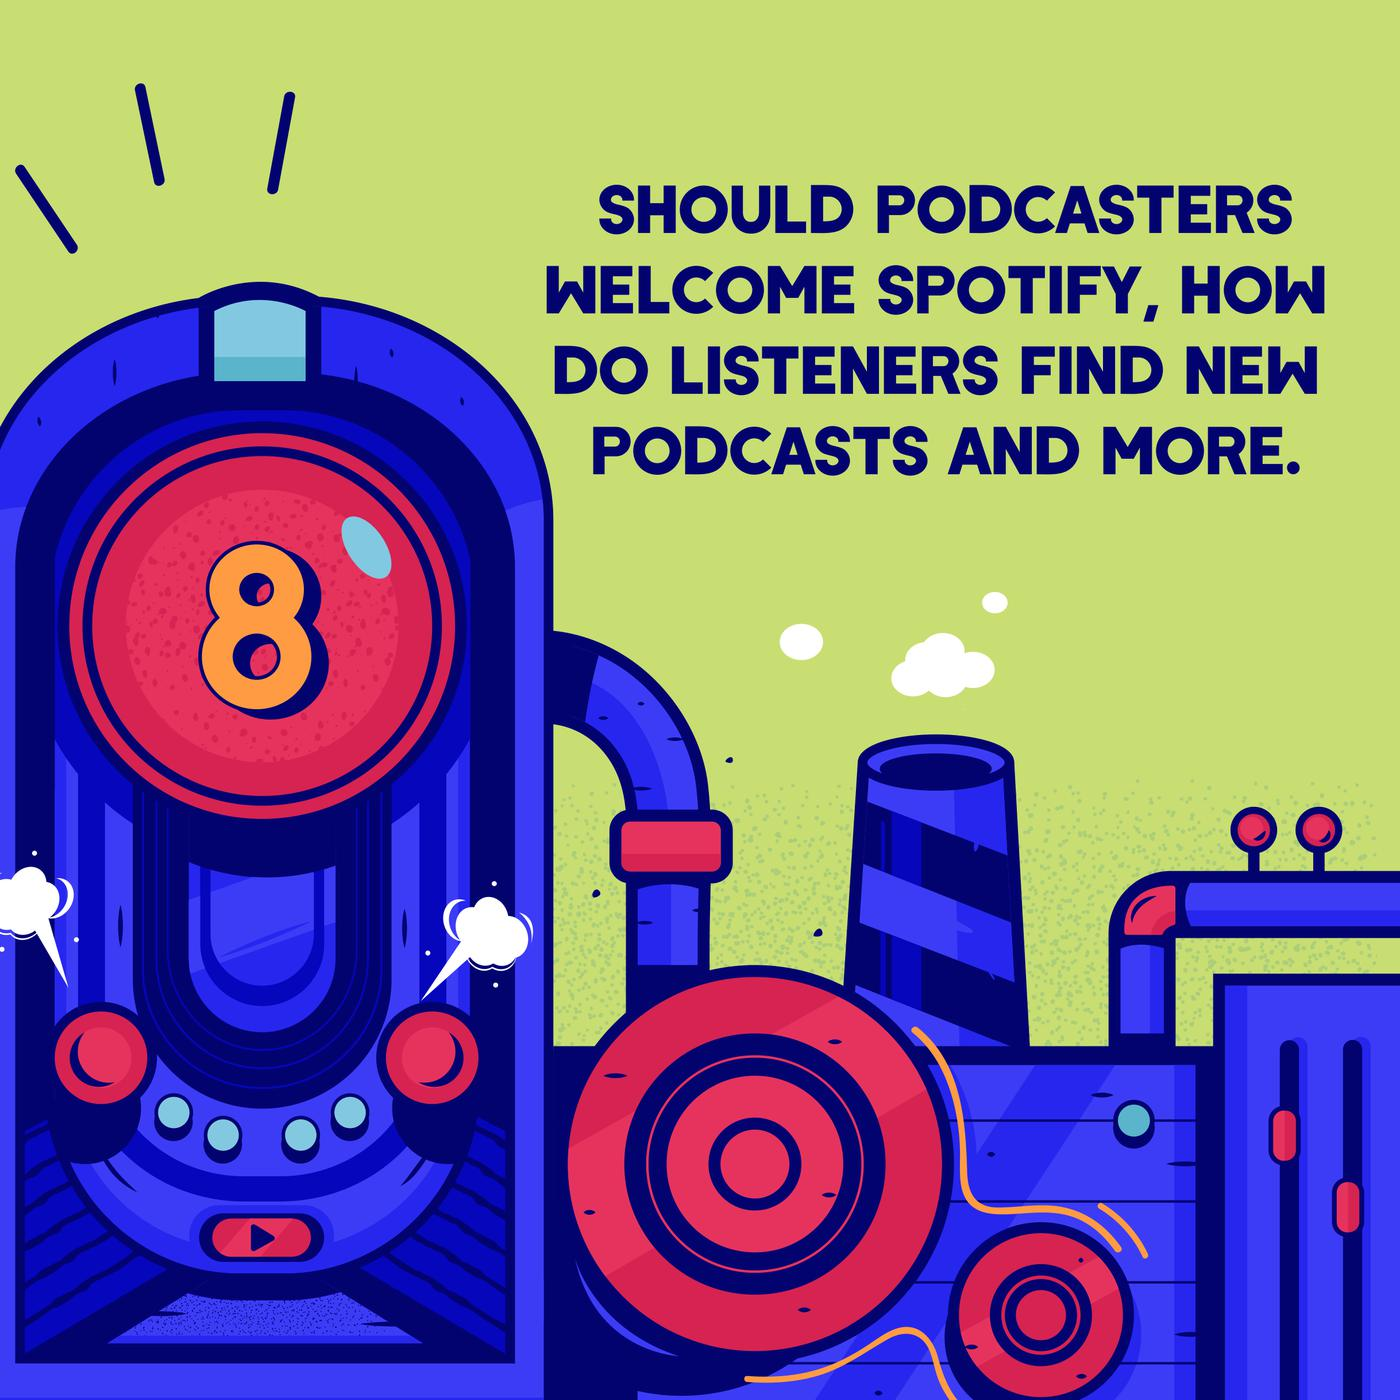 Episode 8 (TWIP) - Should Podcasters Welcome Spotify, How do Listeners Find new Podcasts, and More.